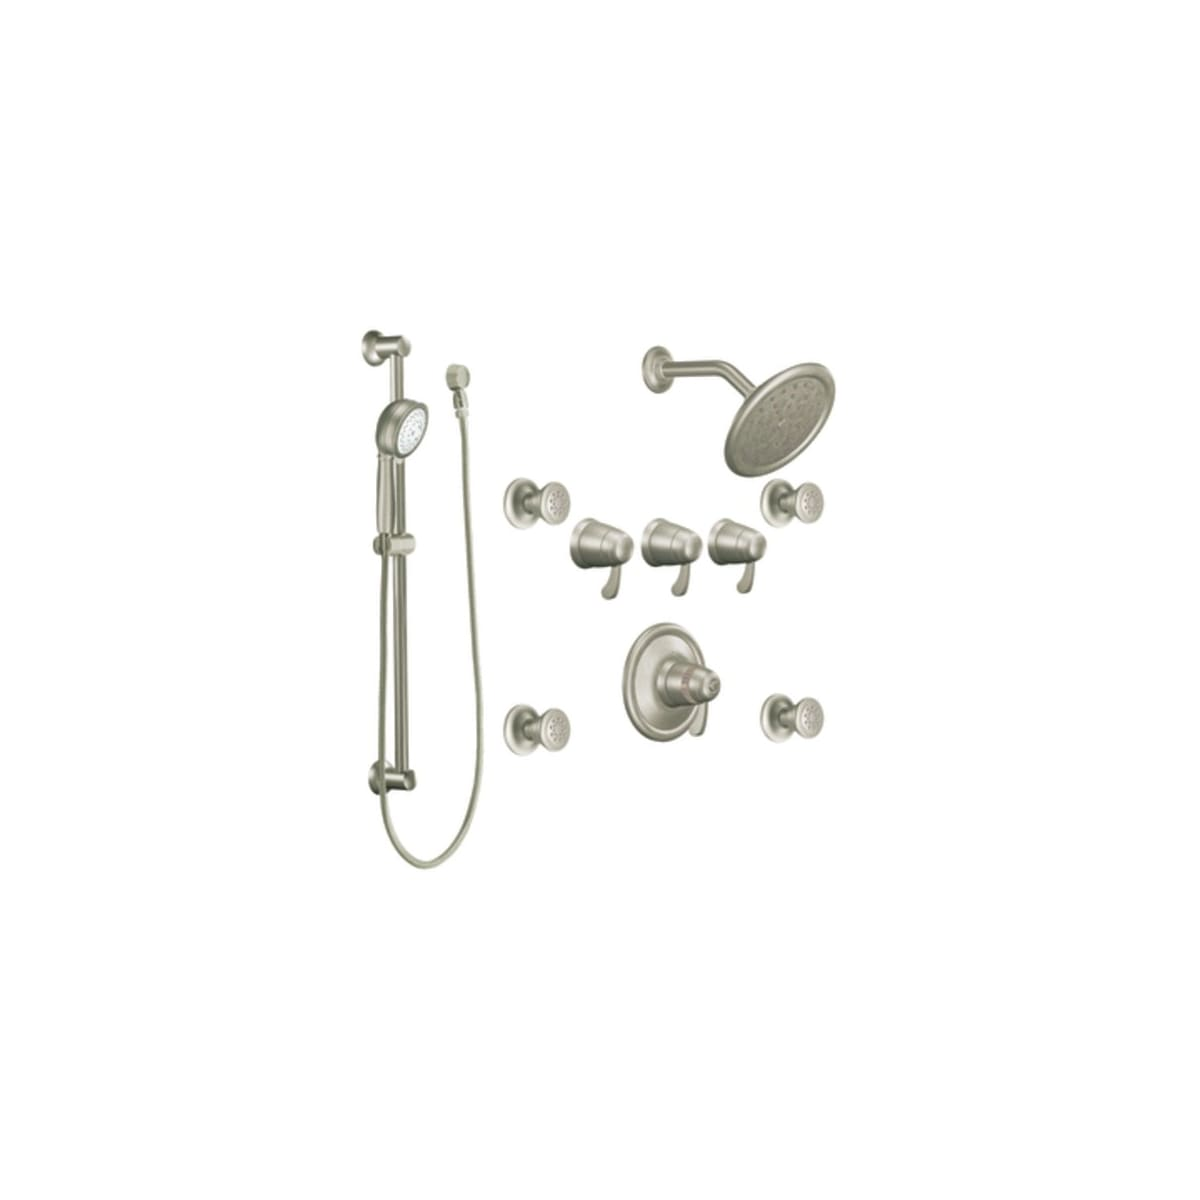 Moen Ts275 Chrome Quad Handle Vertical Spa Trim With